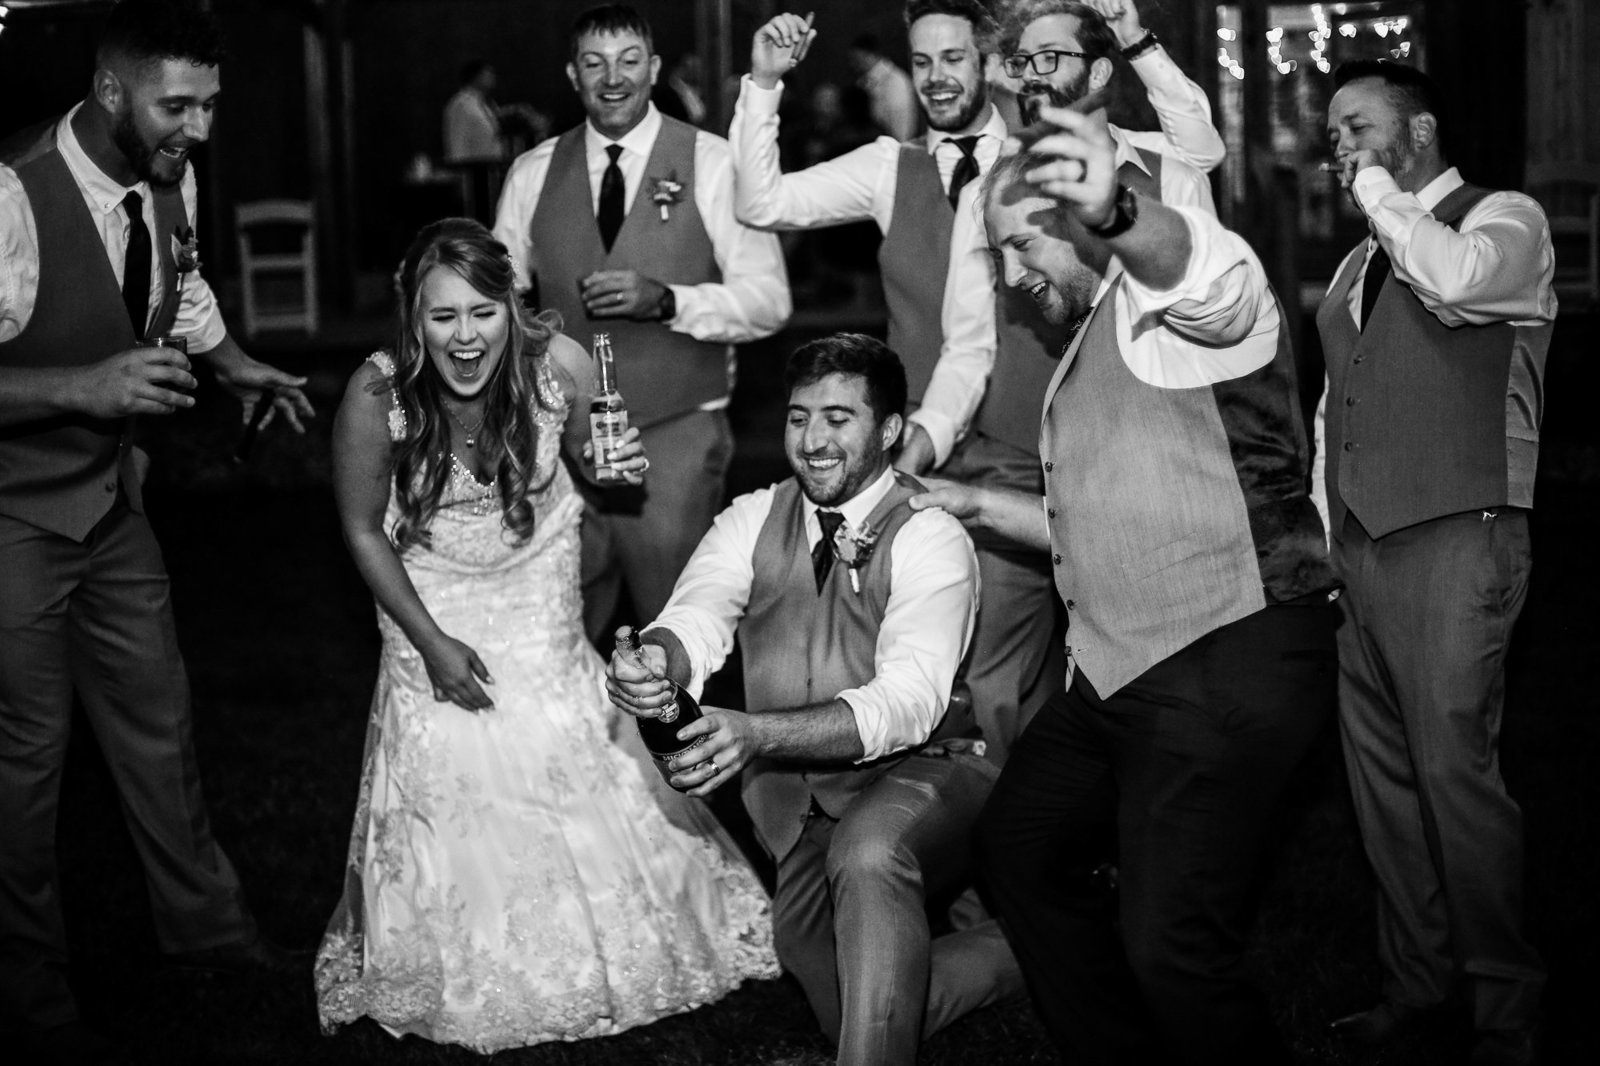 Bridal party laughs as groomsman aatempts to open a bottle of champagne